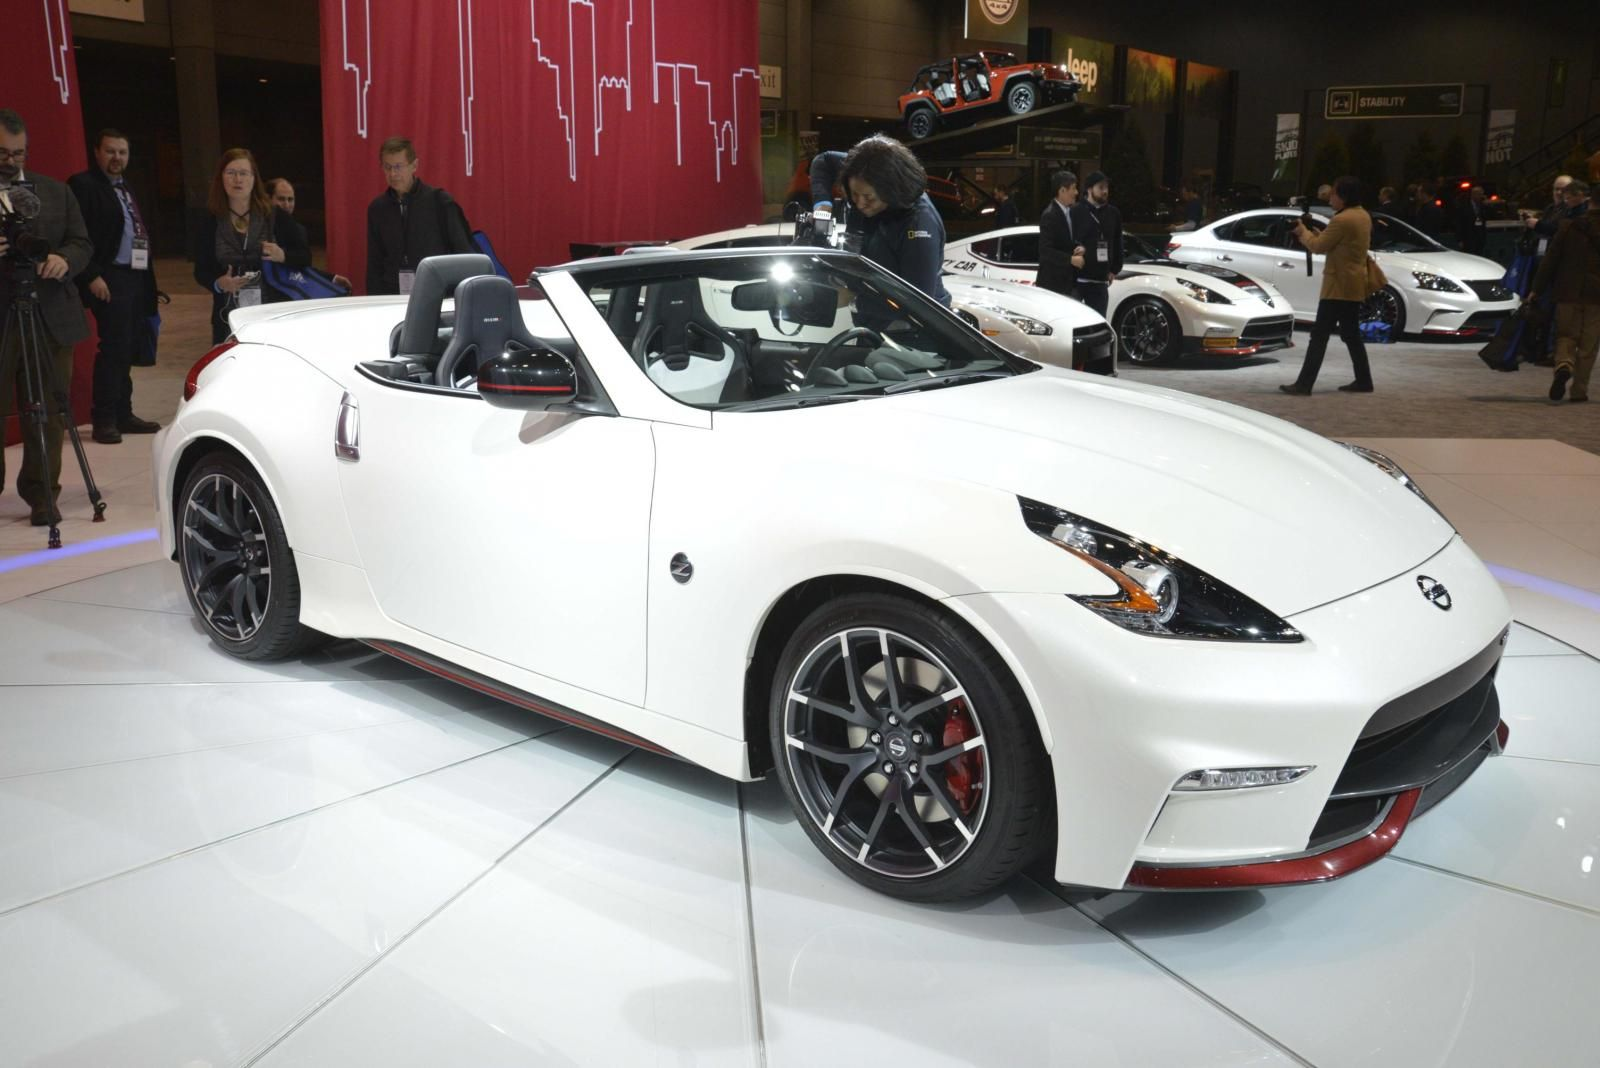 Chicago Auto Show Hosted A Quite Appealing Nissan 370z Nismo Nissan 370z Nissan 370z Convertible Nissan 370z Nismo